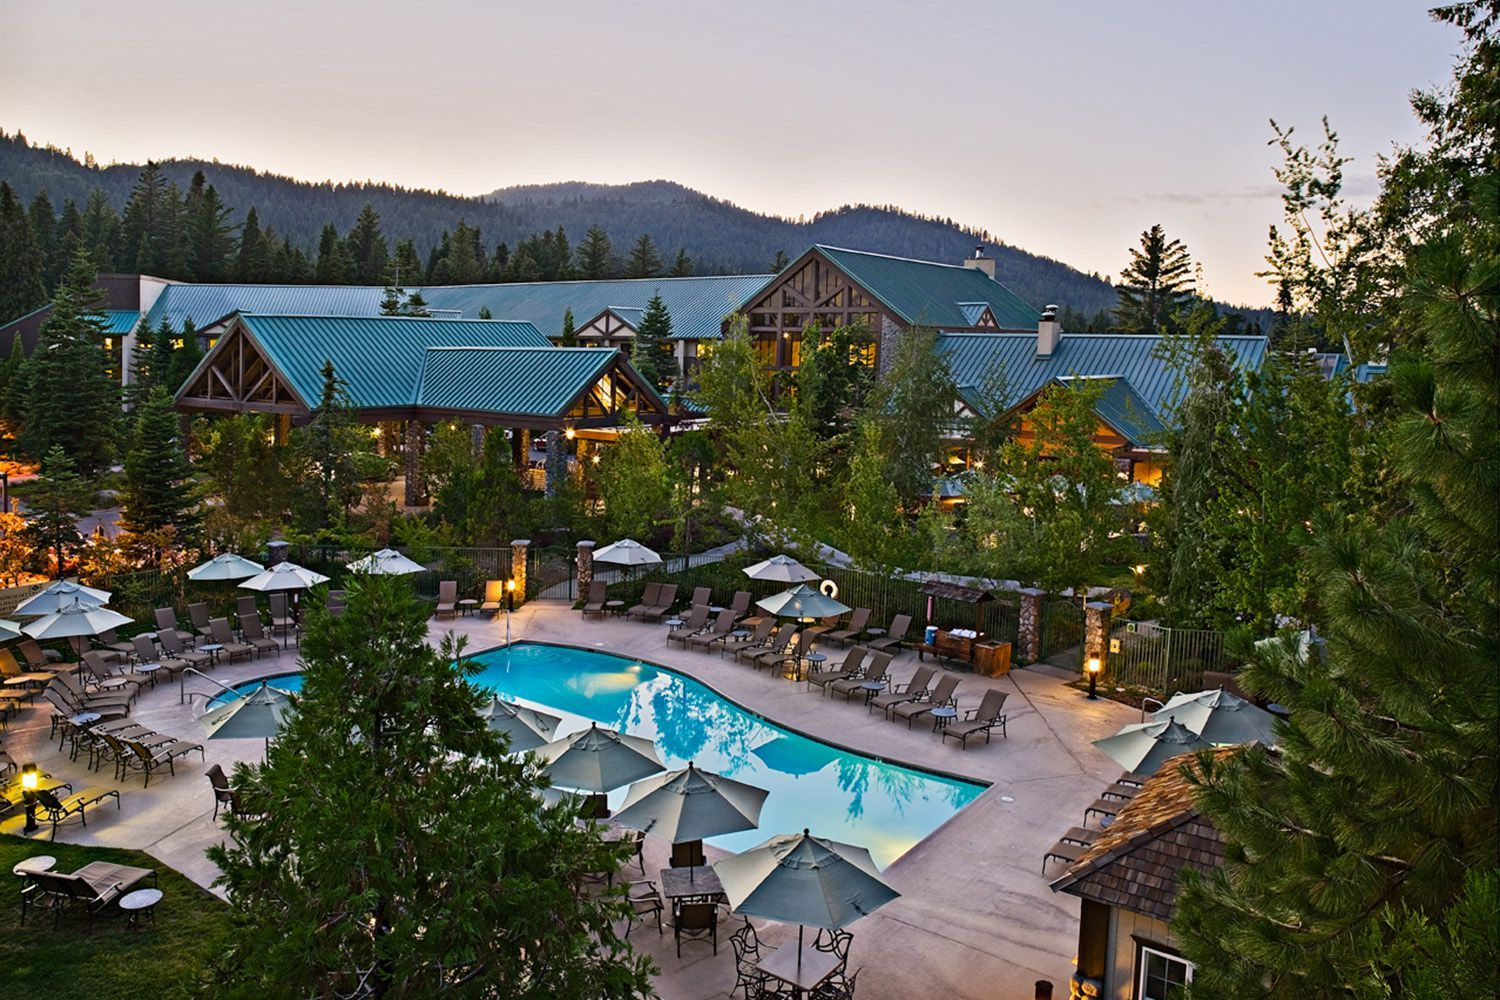 A guide to the hotels near Yosemite